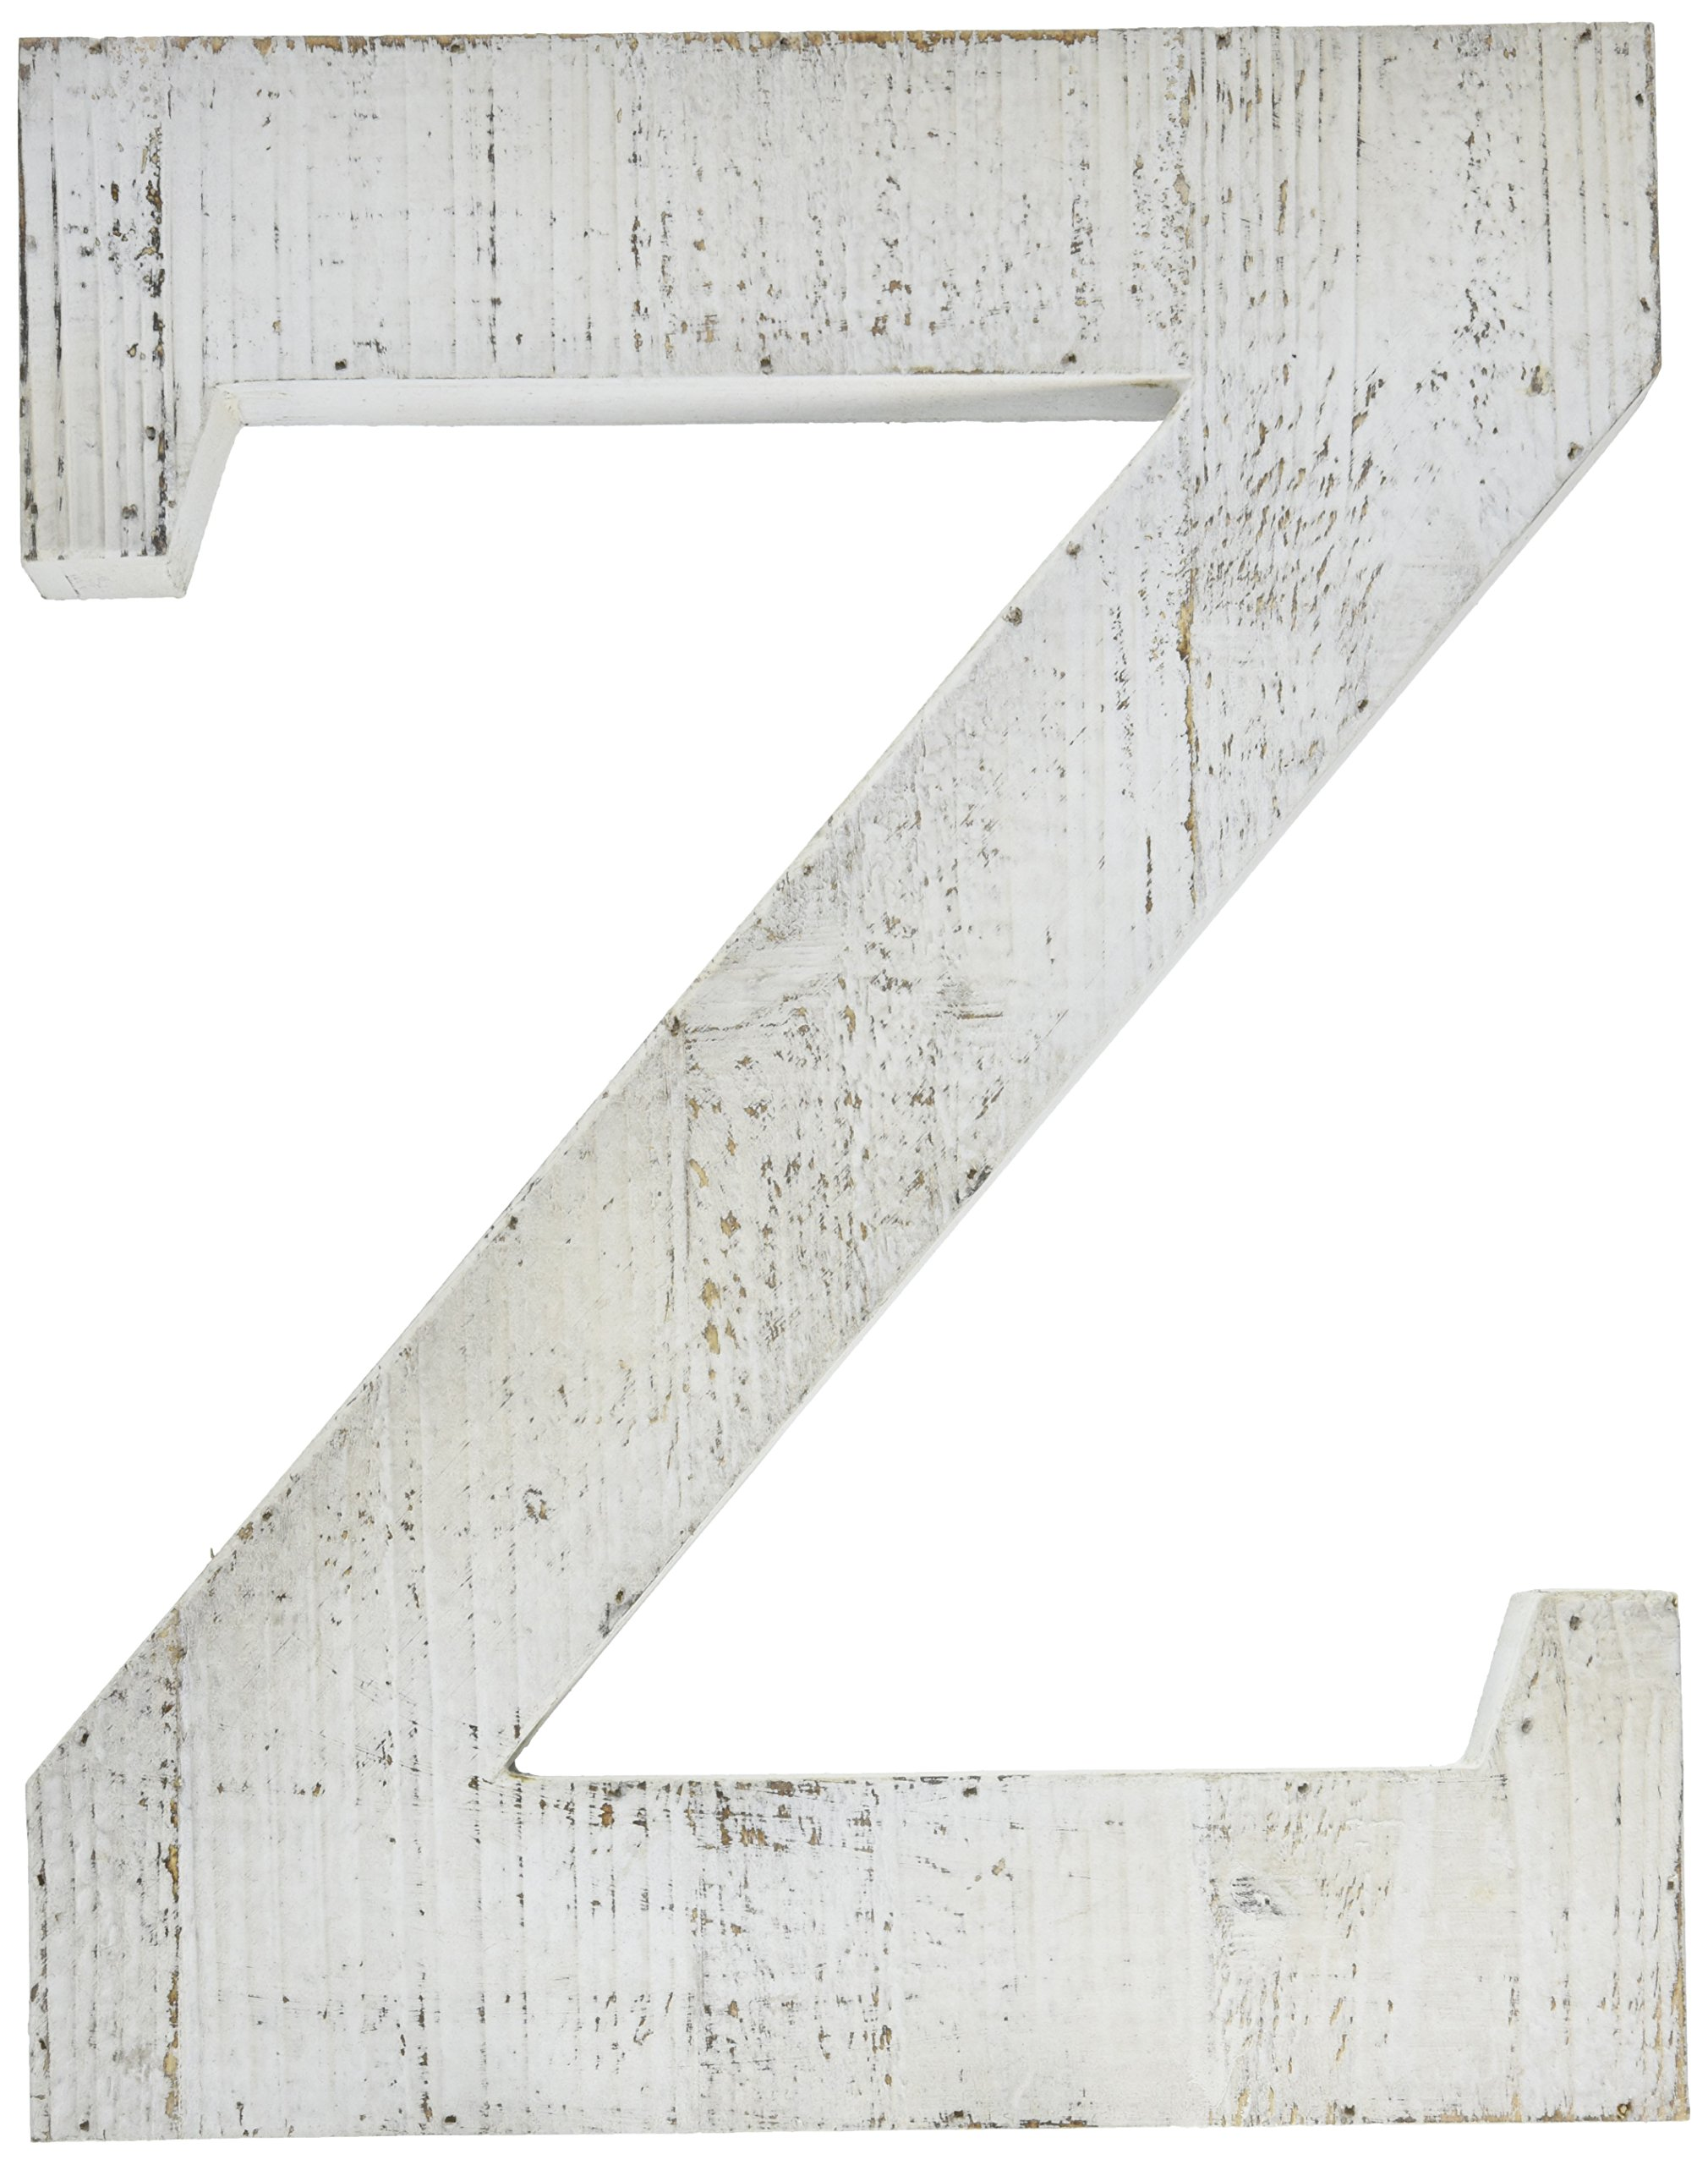 ADECO Trading Adeco Wooden Hanging Wall Letters''Z'' - White Decorative Wall Letter of Living Room, Baby Name and Bedroom Decor, Whitewash